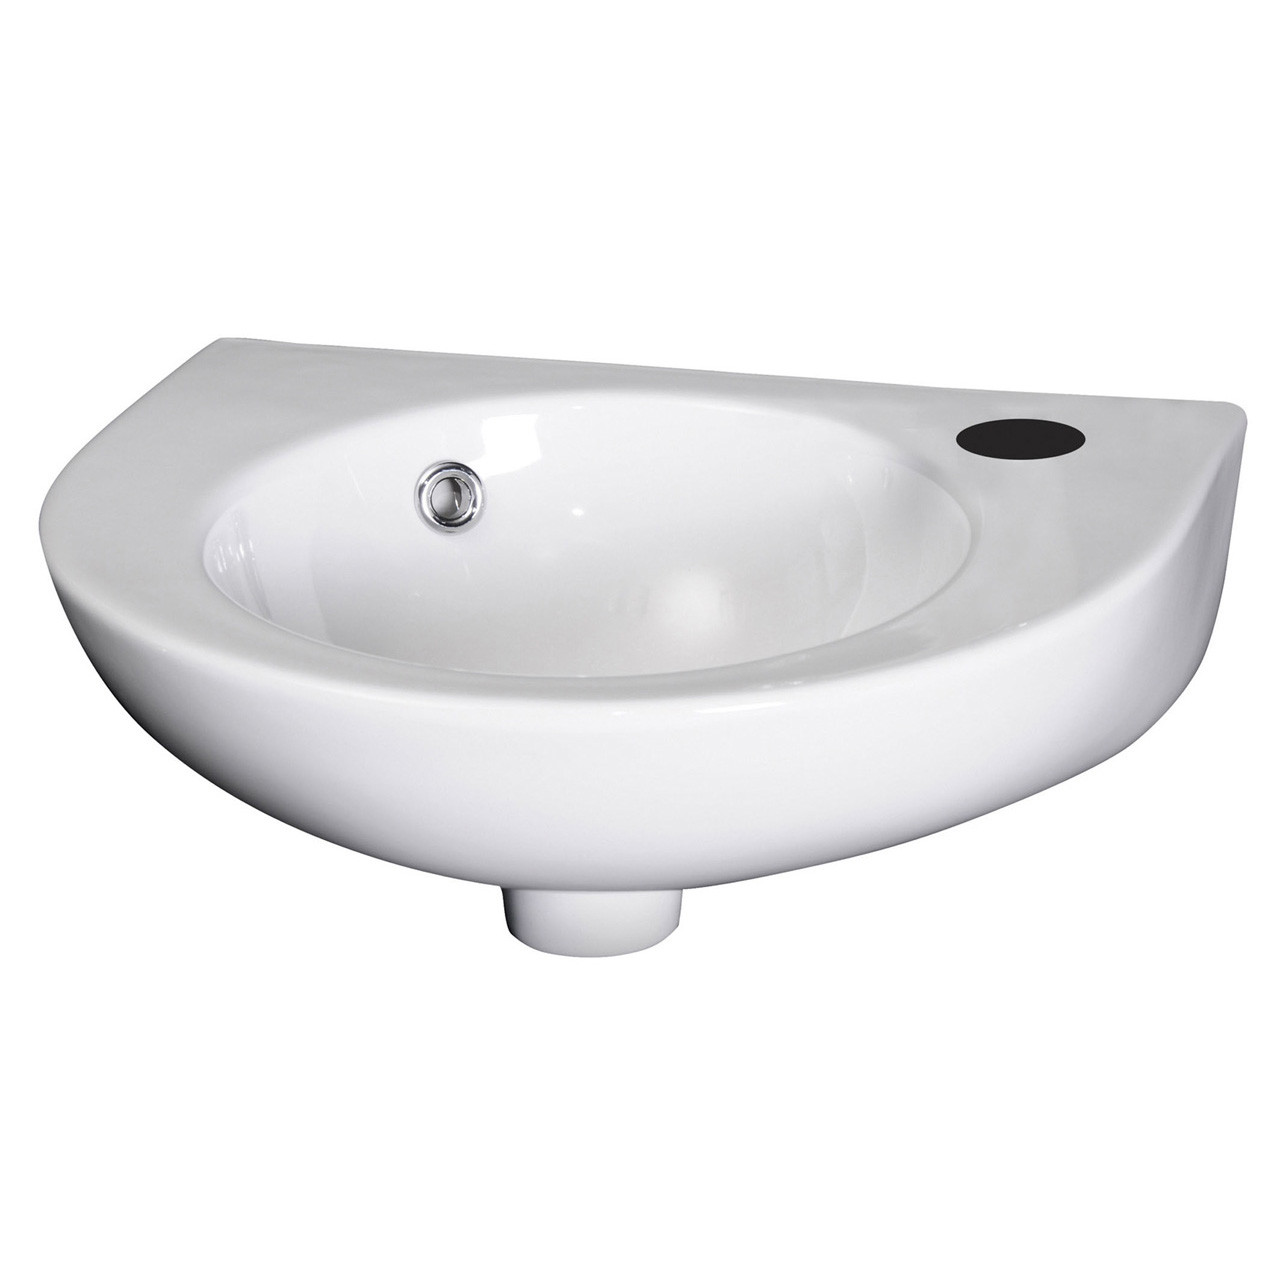 Nuie 430mm Wall Hung Basin with 1 Tap Hole - NCU942